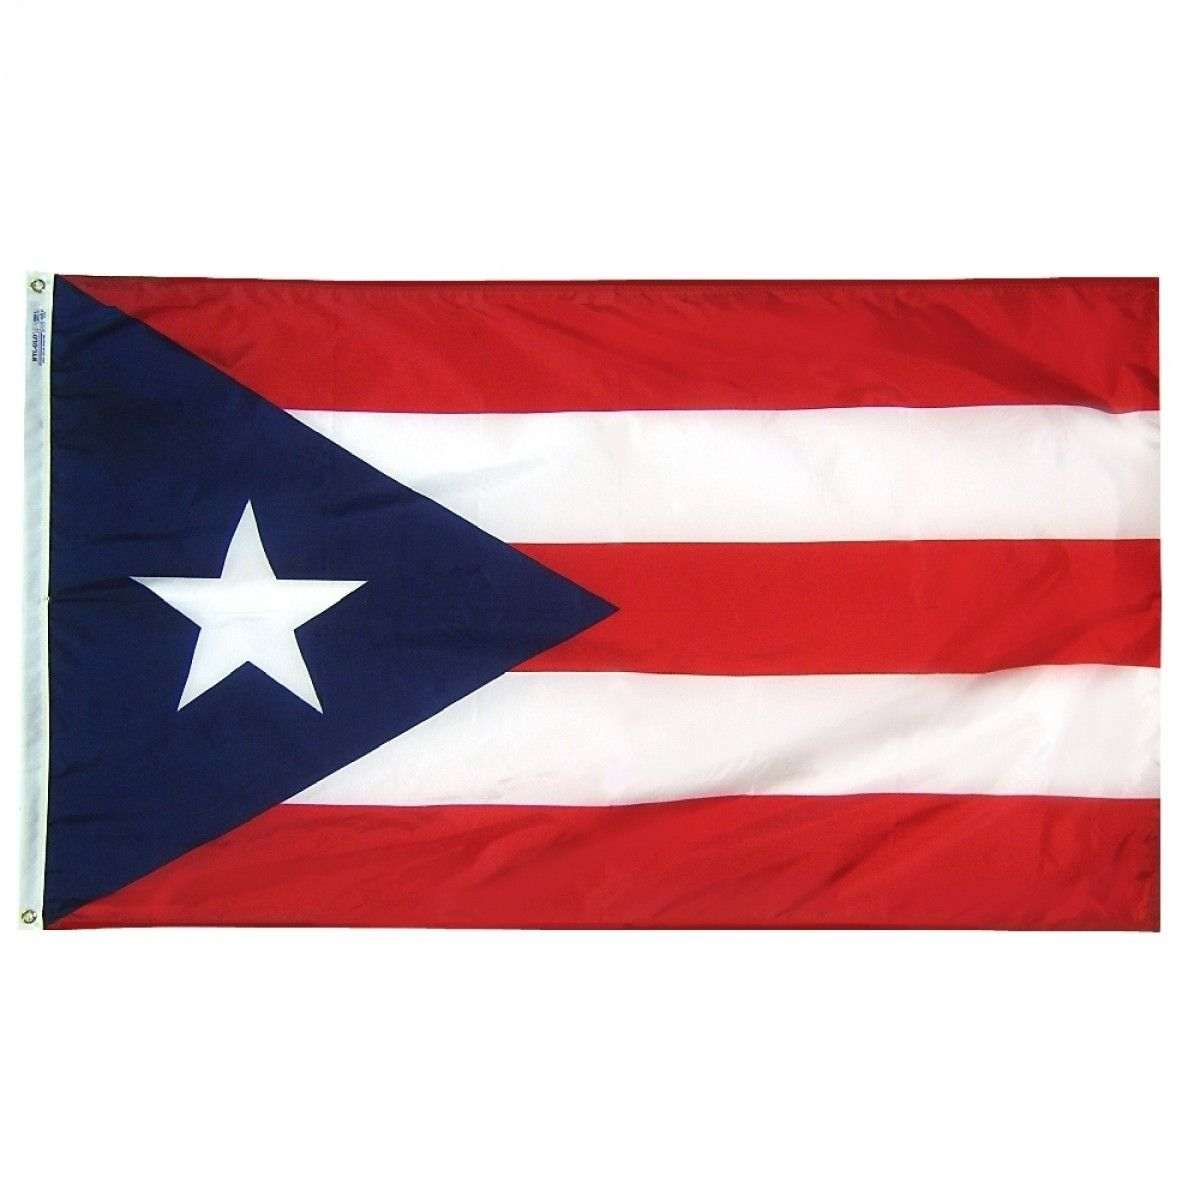 Puerto Rican Pride Flags 12 9028 Puerto Rico Flag Displaying The American Flag Puerto Rico